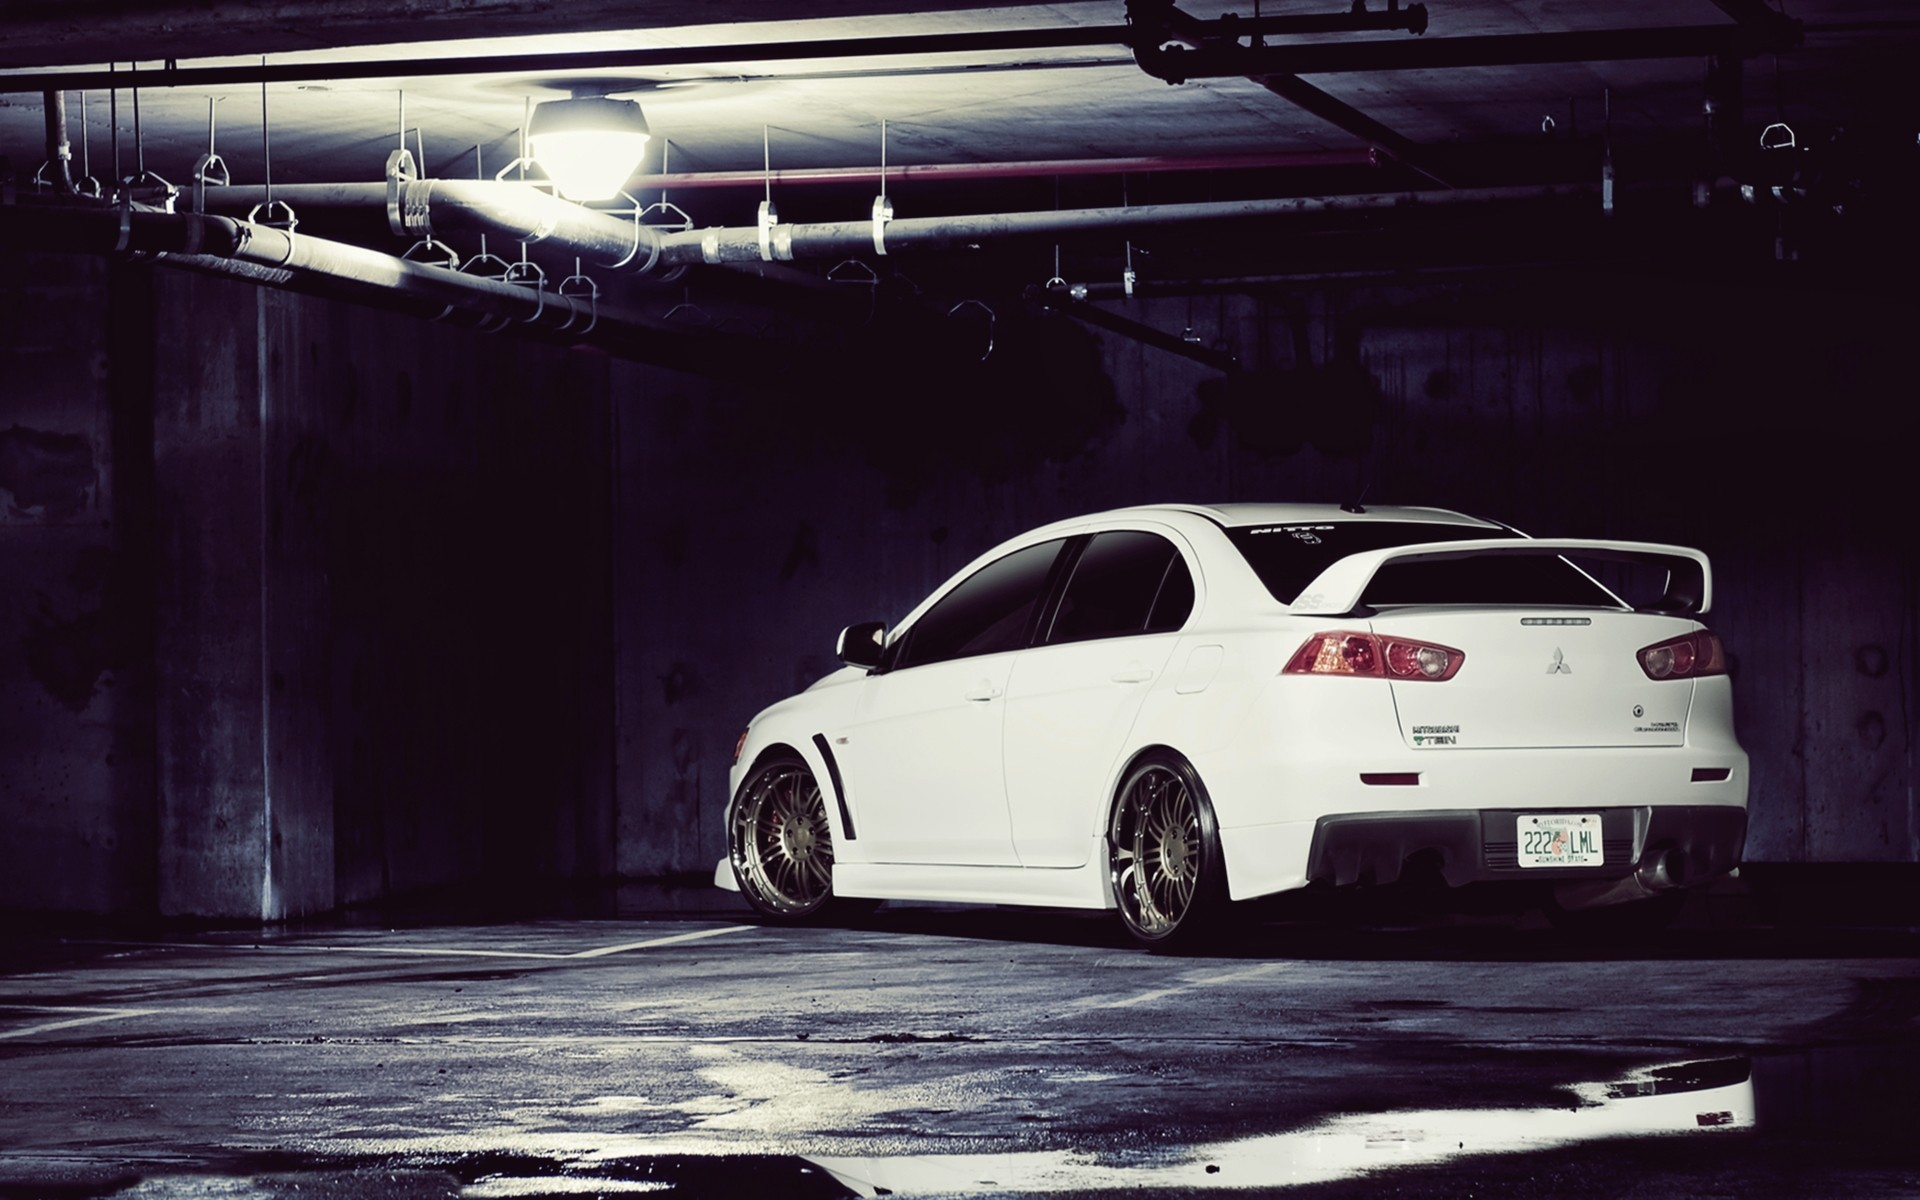 Mitsubishi Lancer Evolution X HD Wallpaper · 1920x1200 Mitsubishi Lancer  Evolution X ...